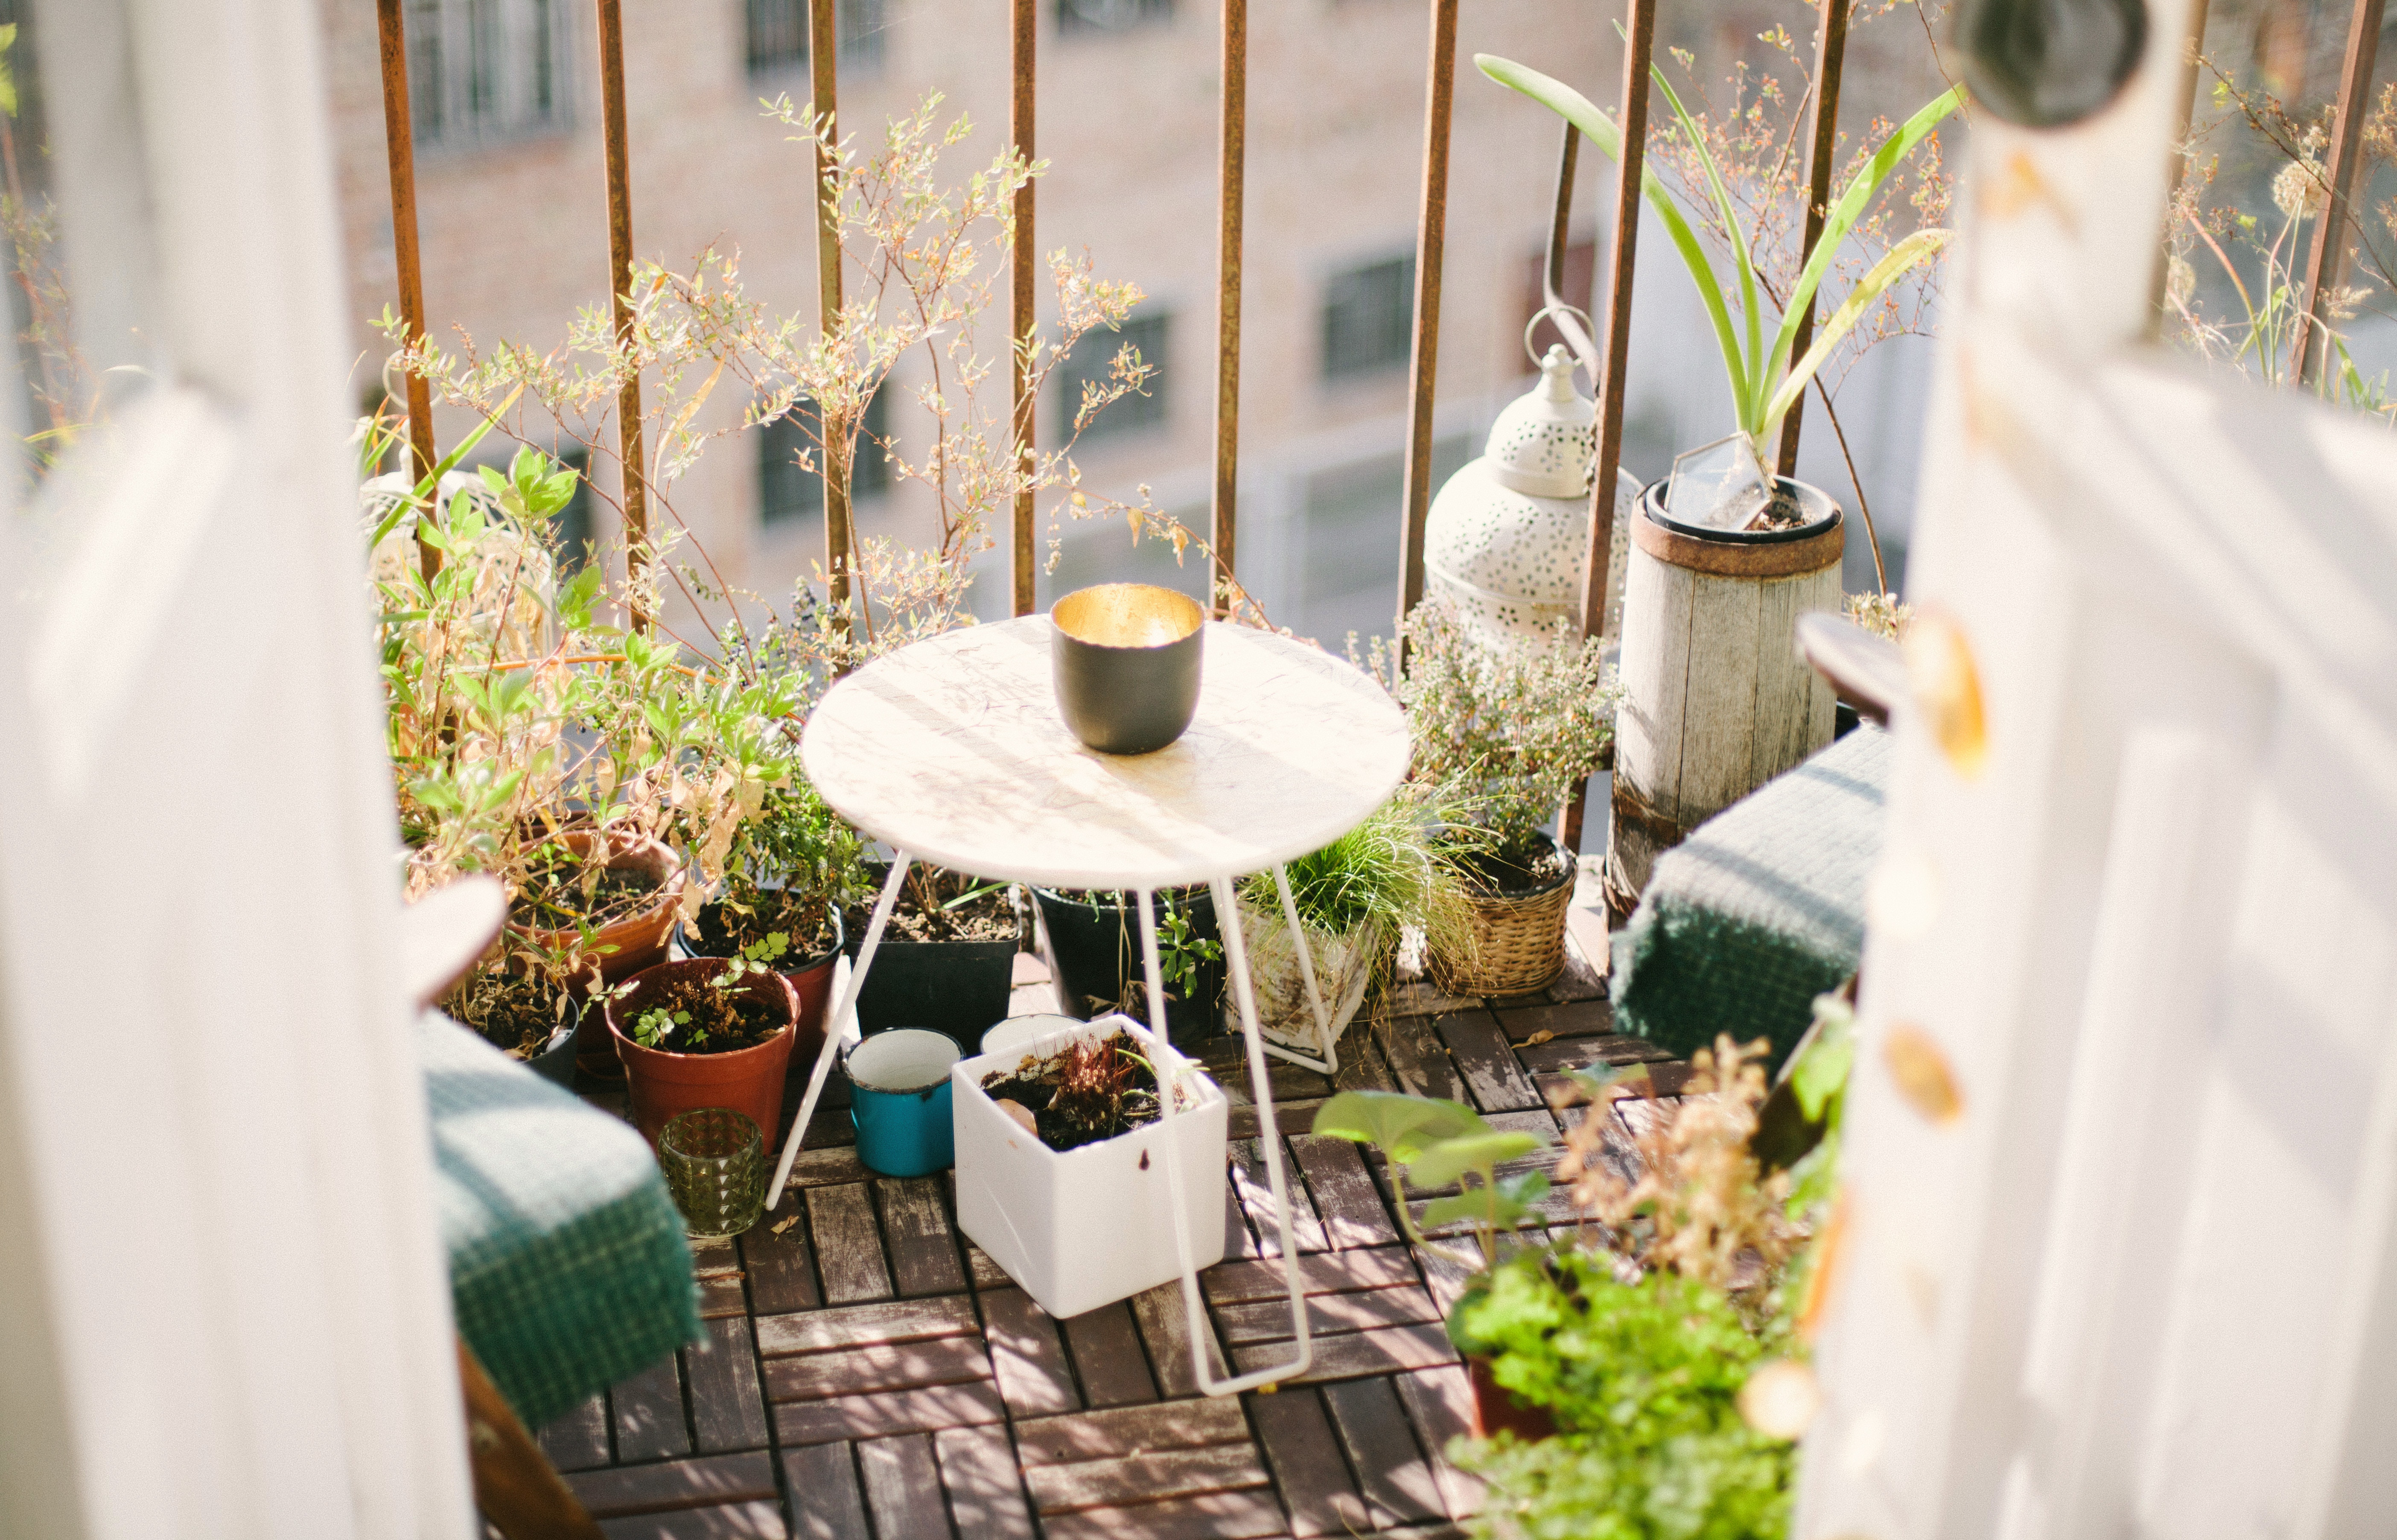 Plants for your balcony